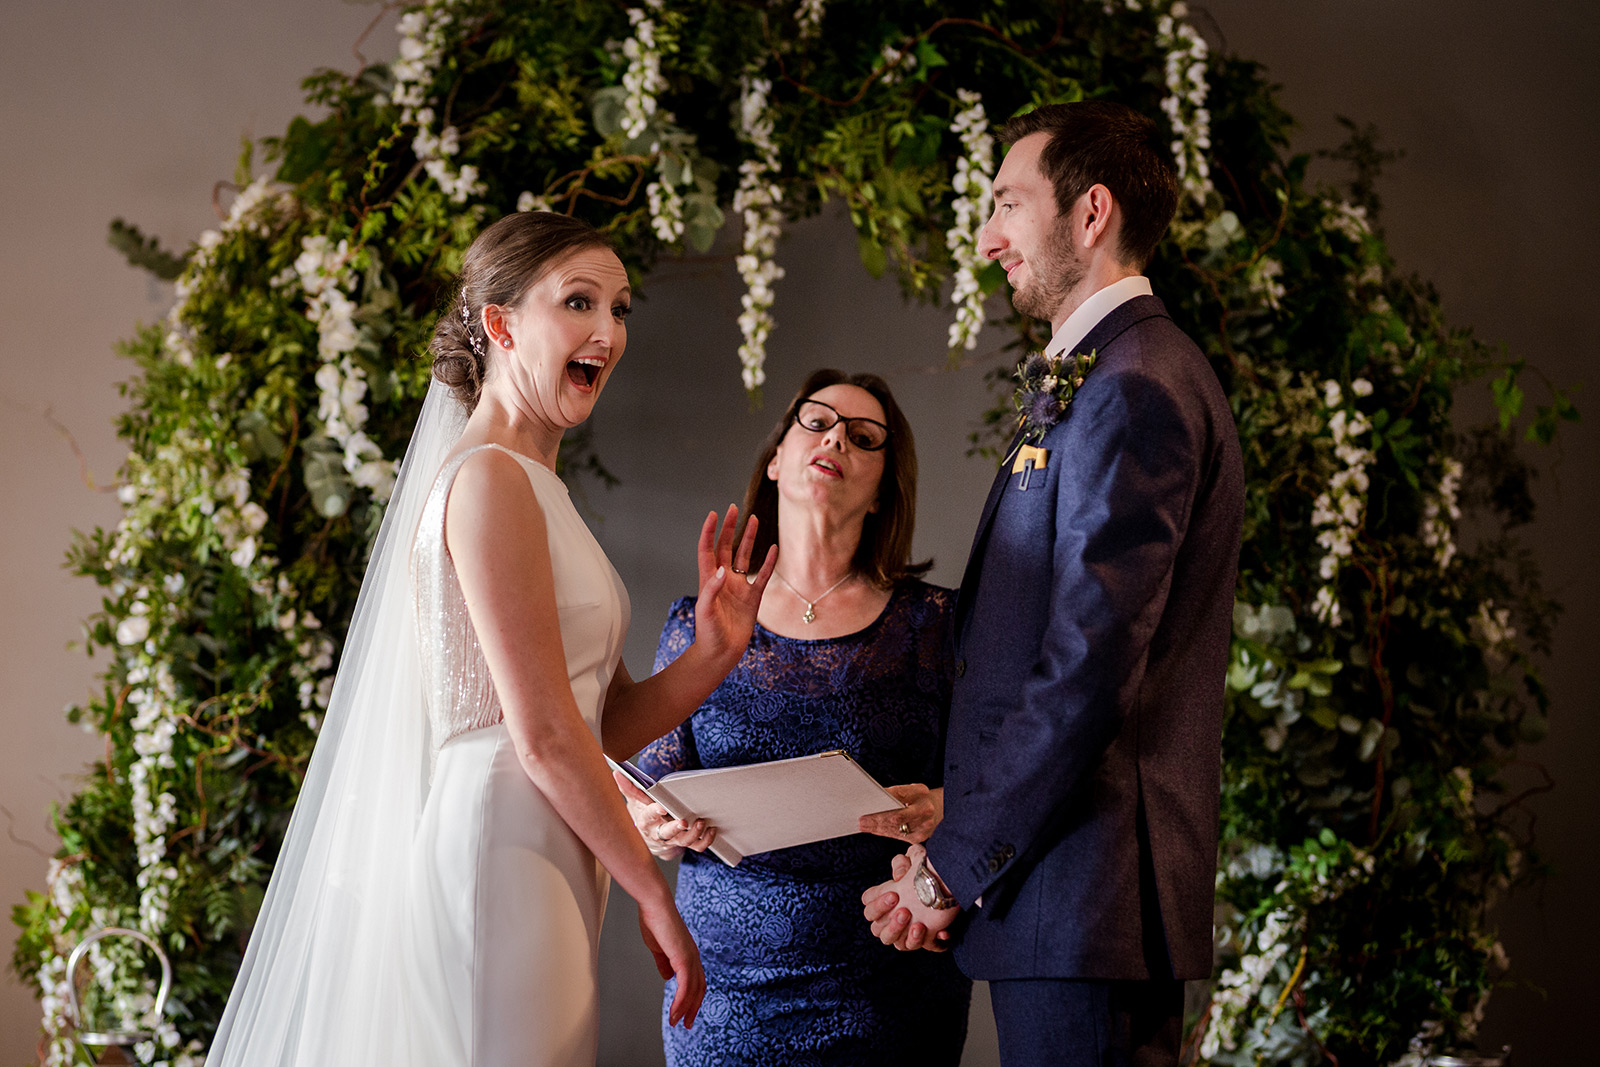 The wedding ceremony at Leaf Manchester